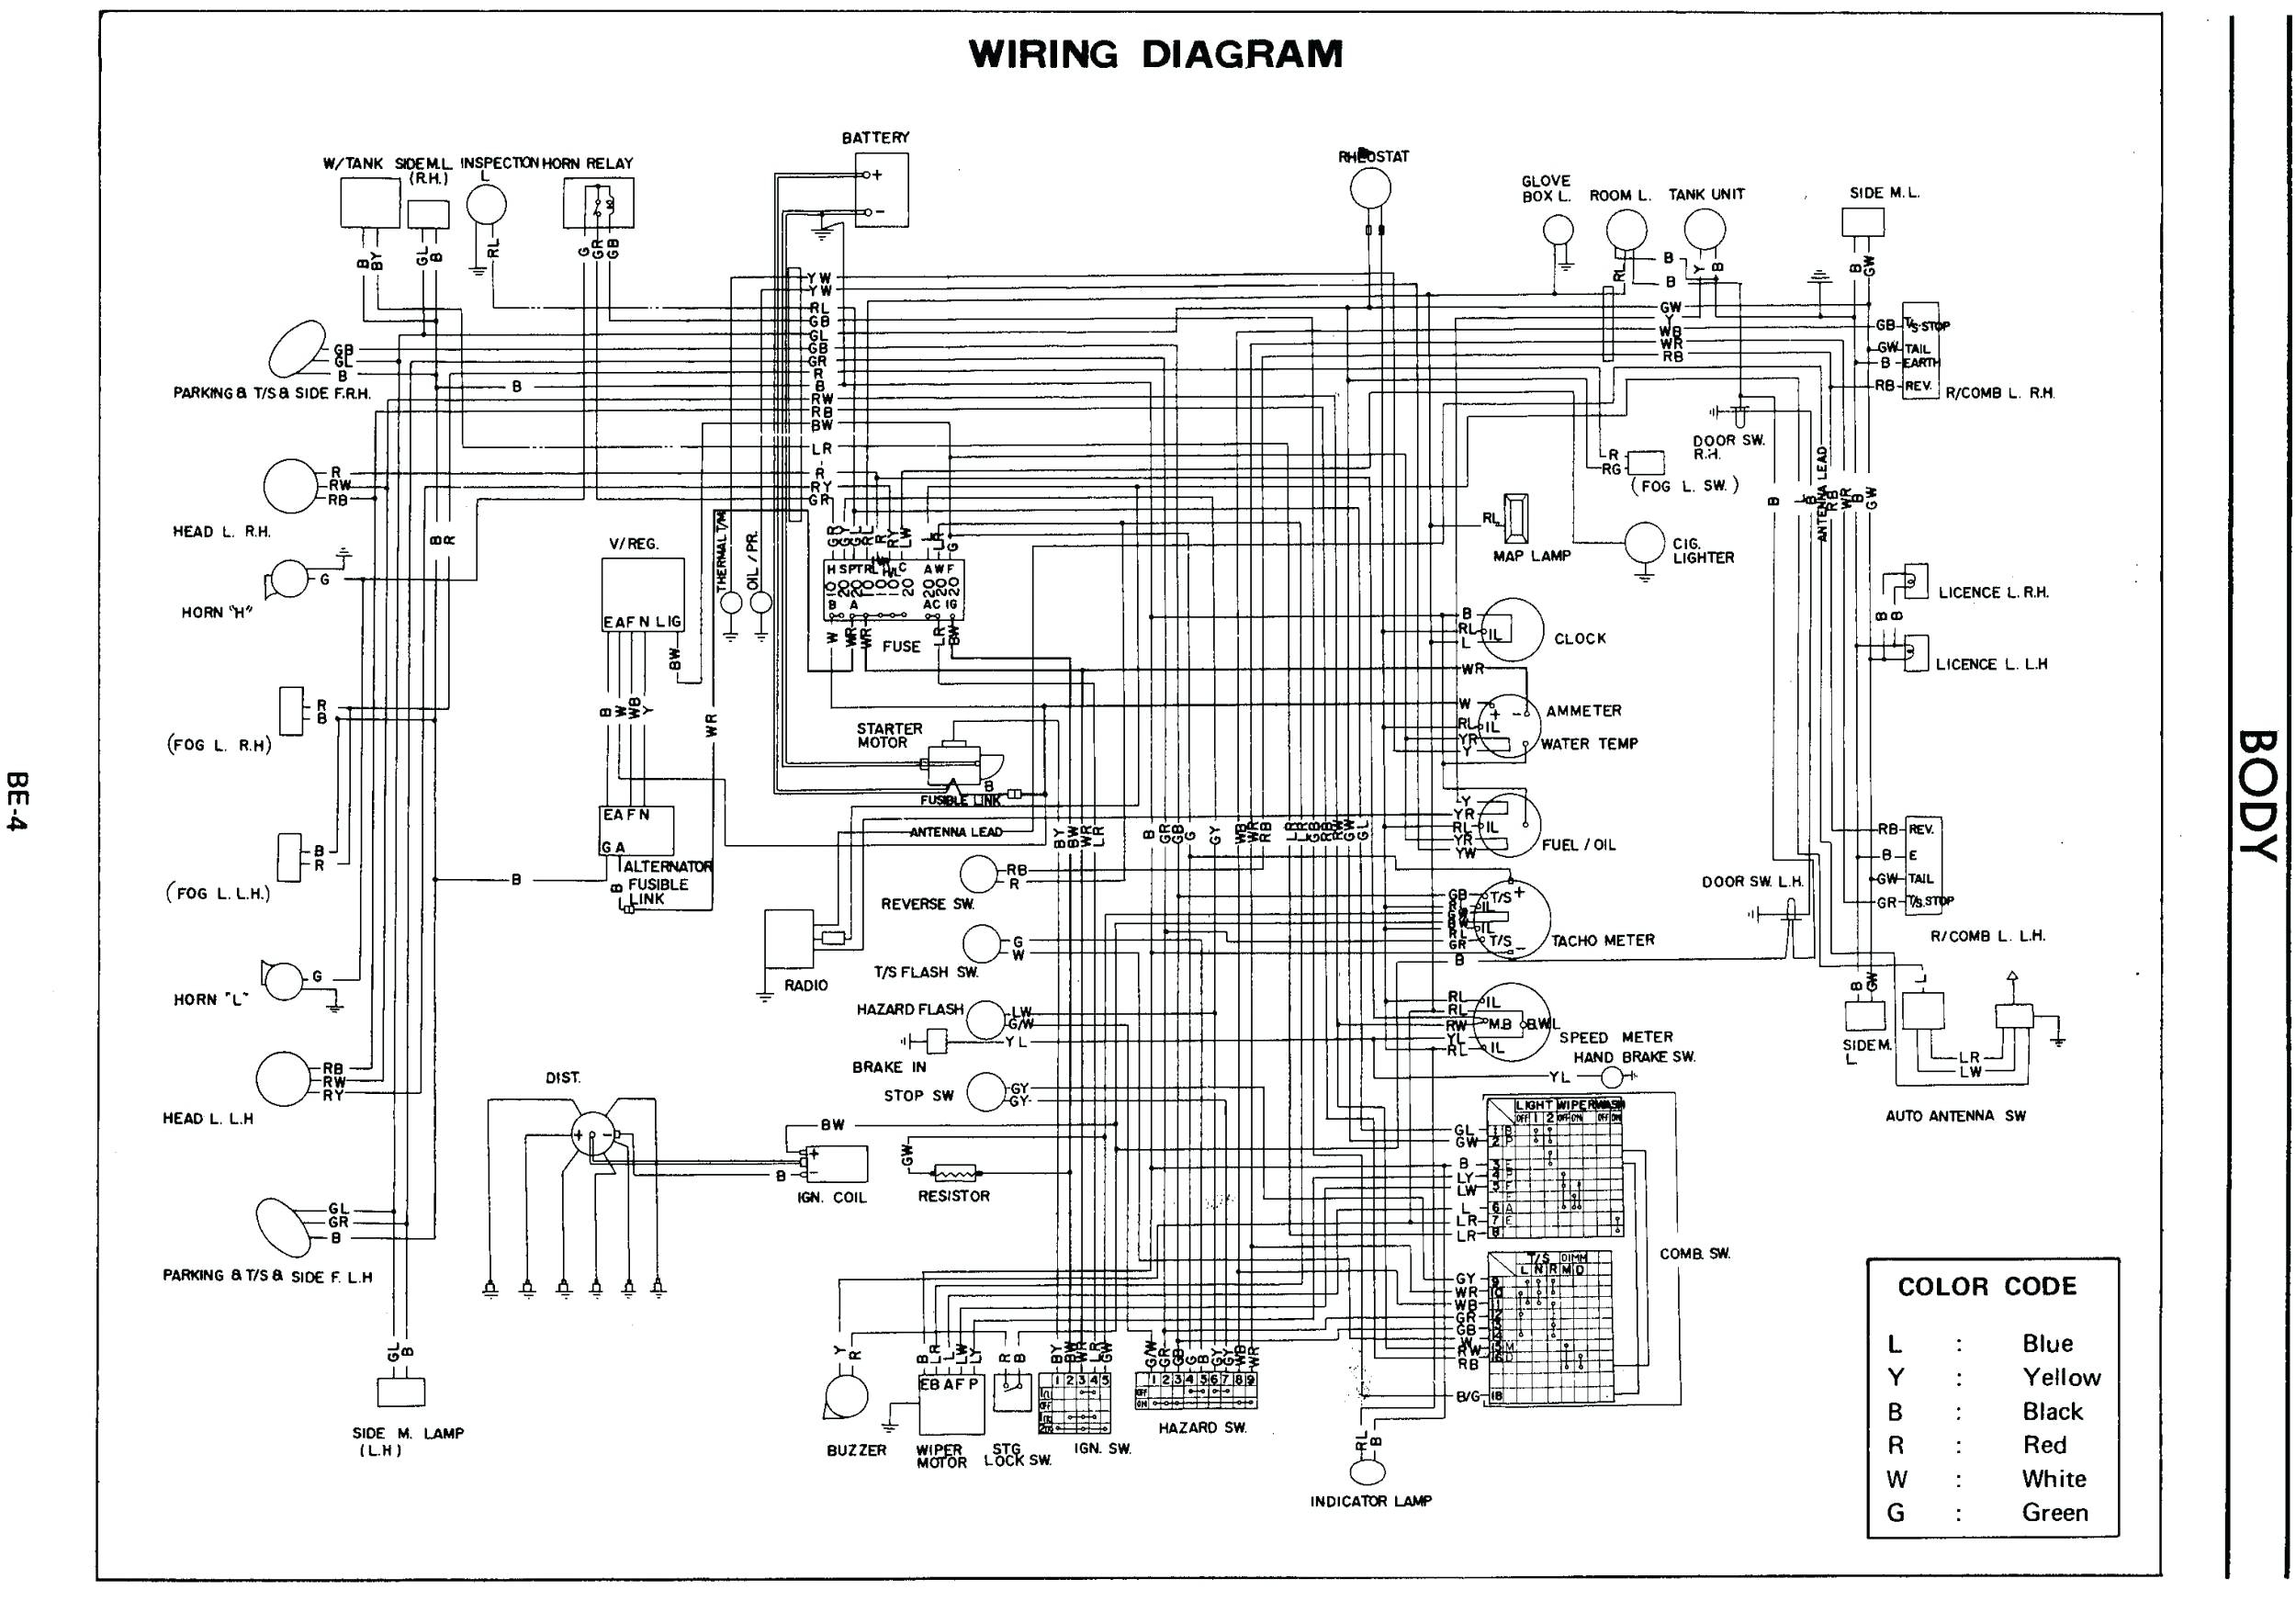 Mini Cooper Stereo Wire Diagram For 2013 Wiring Diagram Schematic Rock Guest Rock Guest Aliceviola It